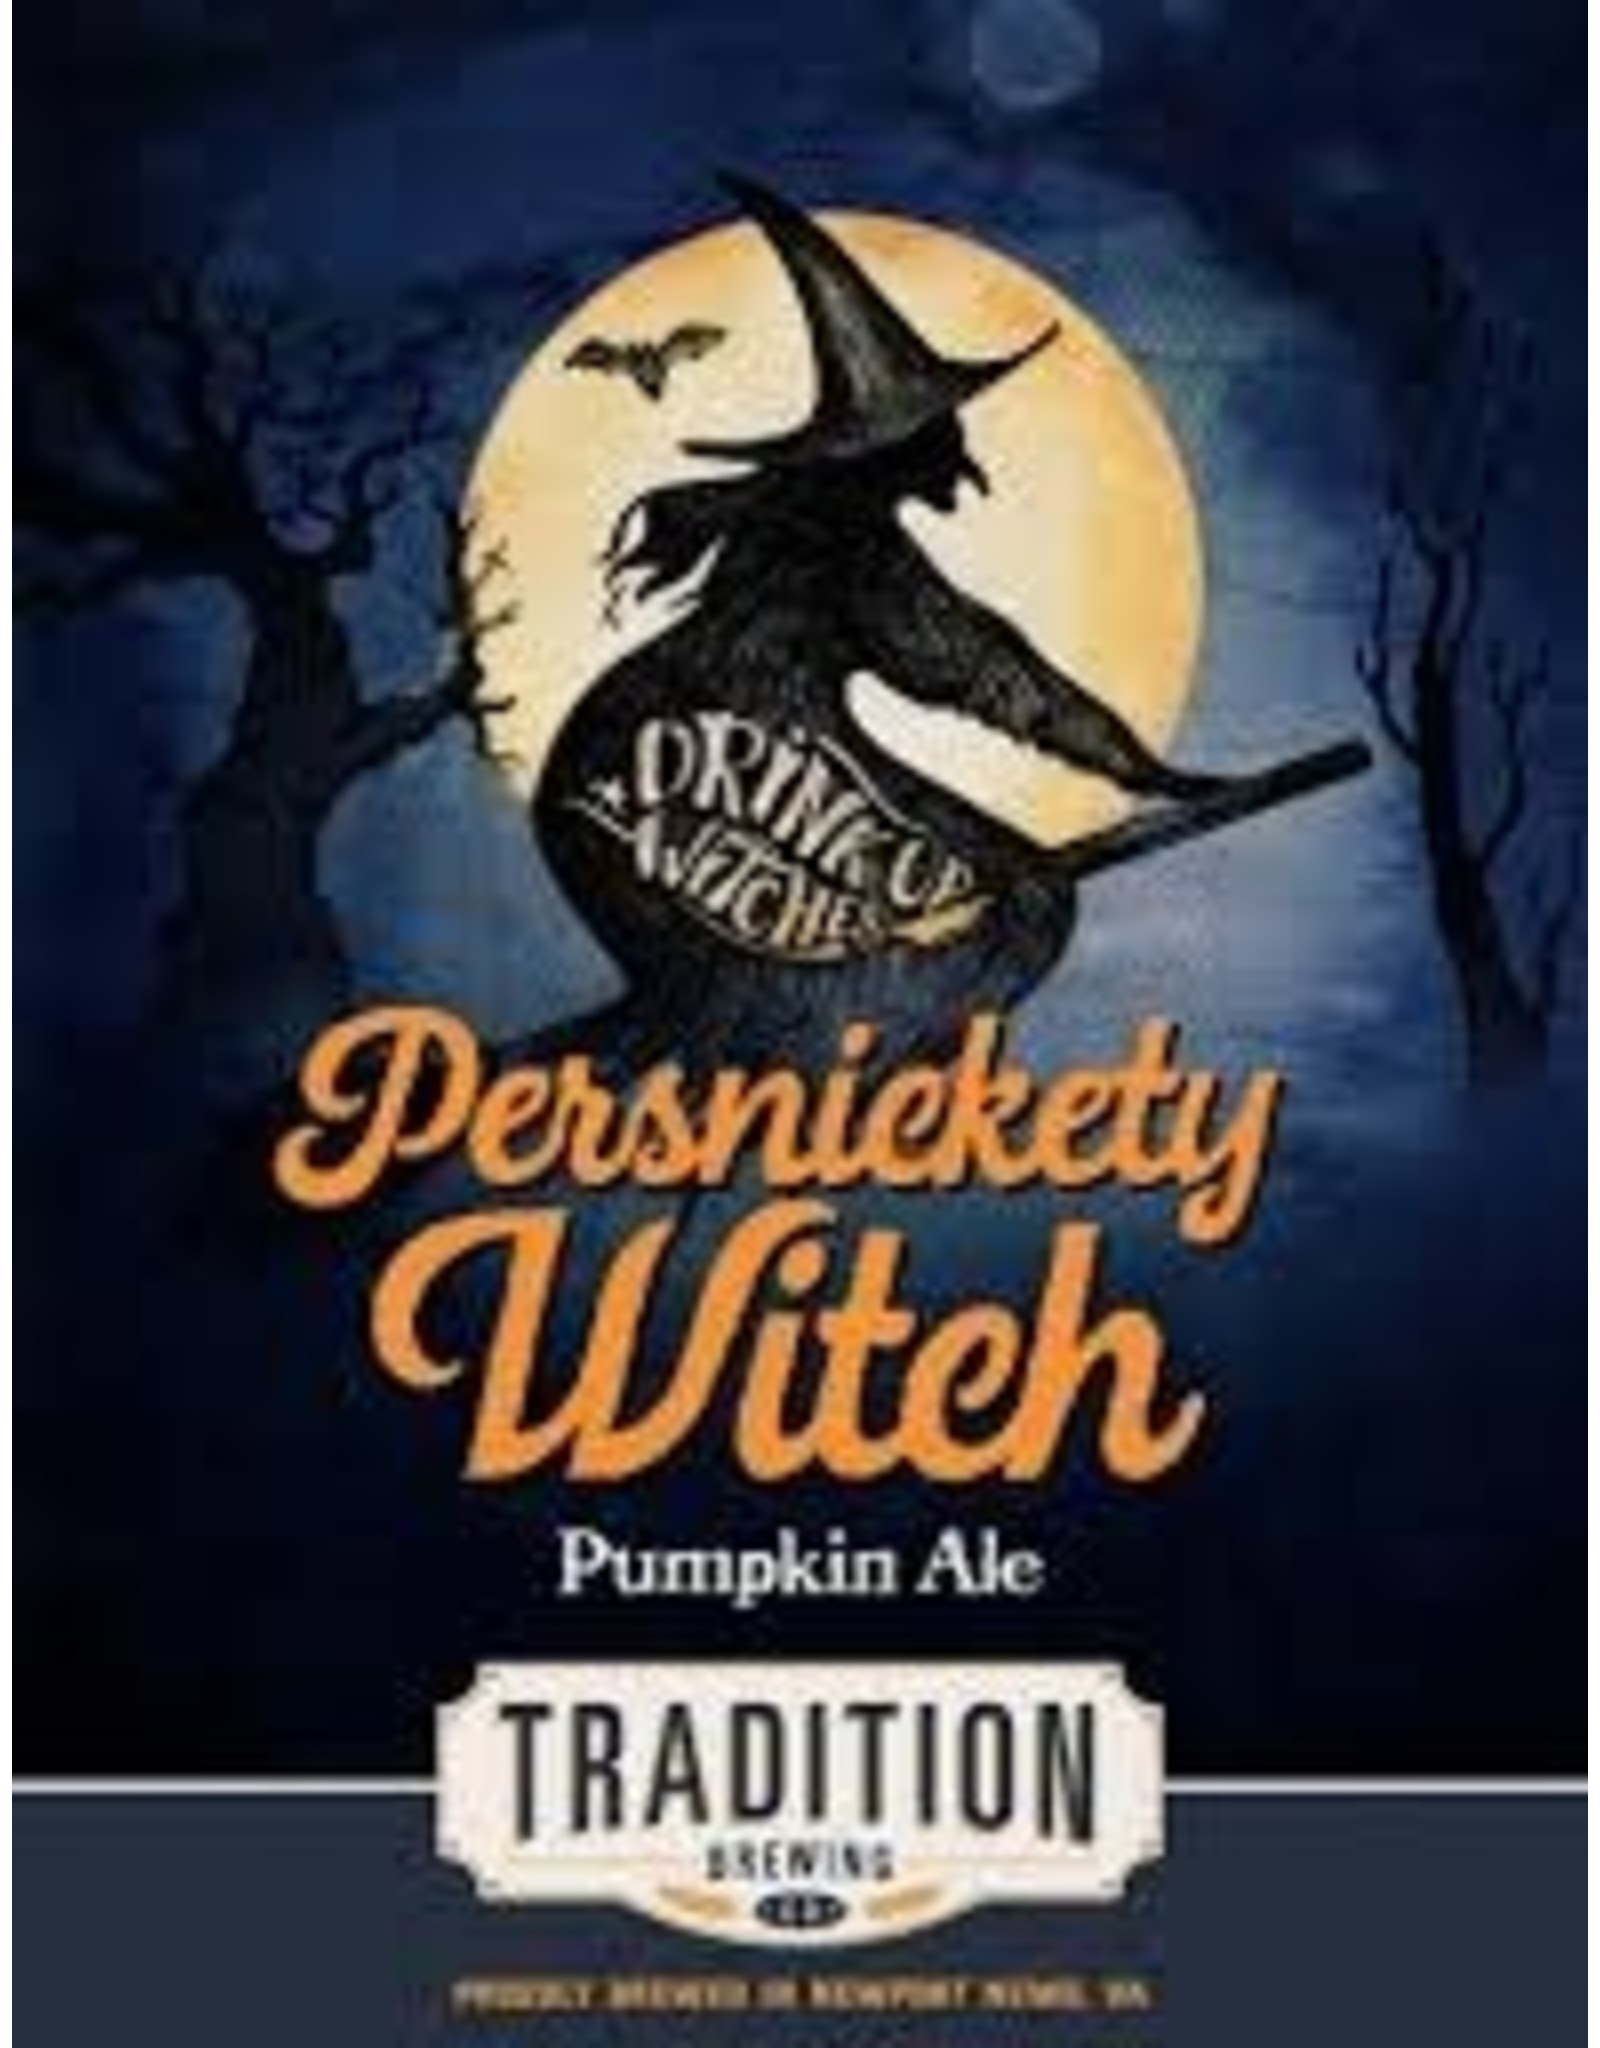 Tradition Tradition Persnickety Witch 4pk can